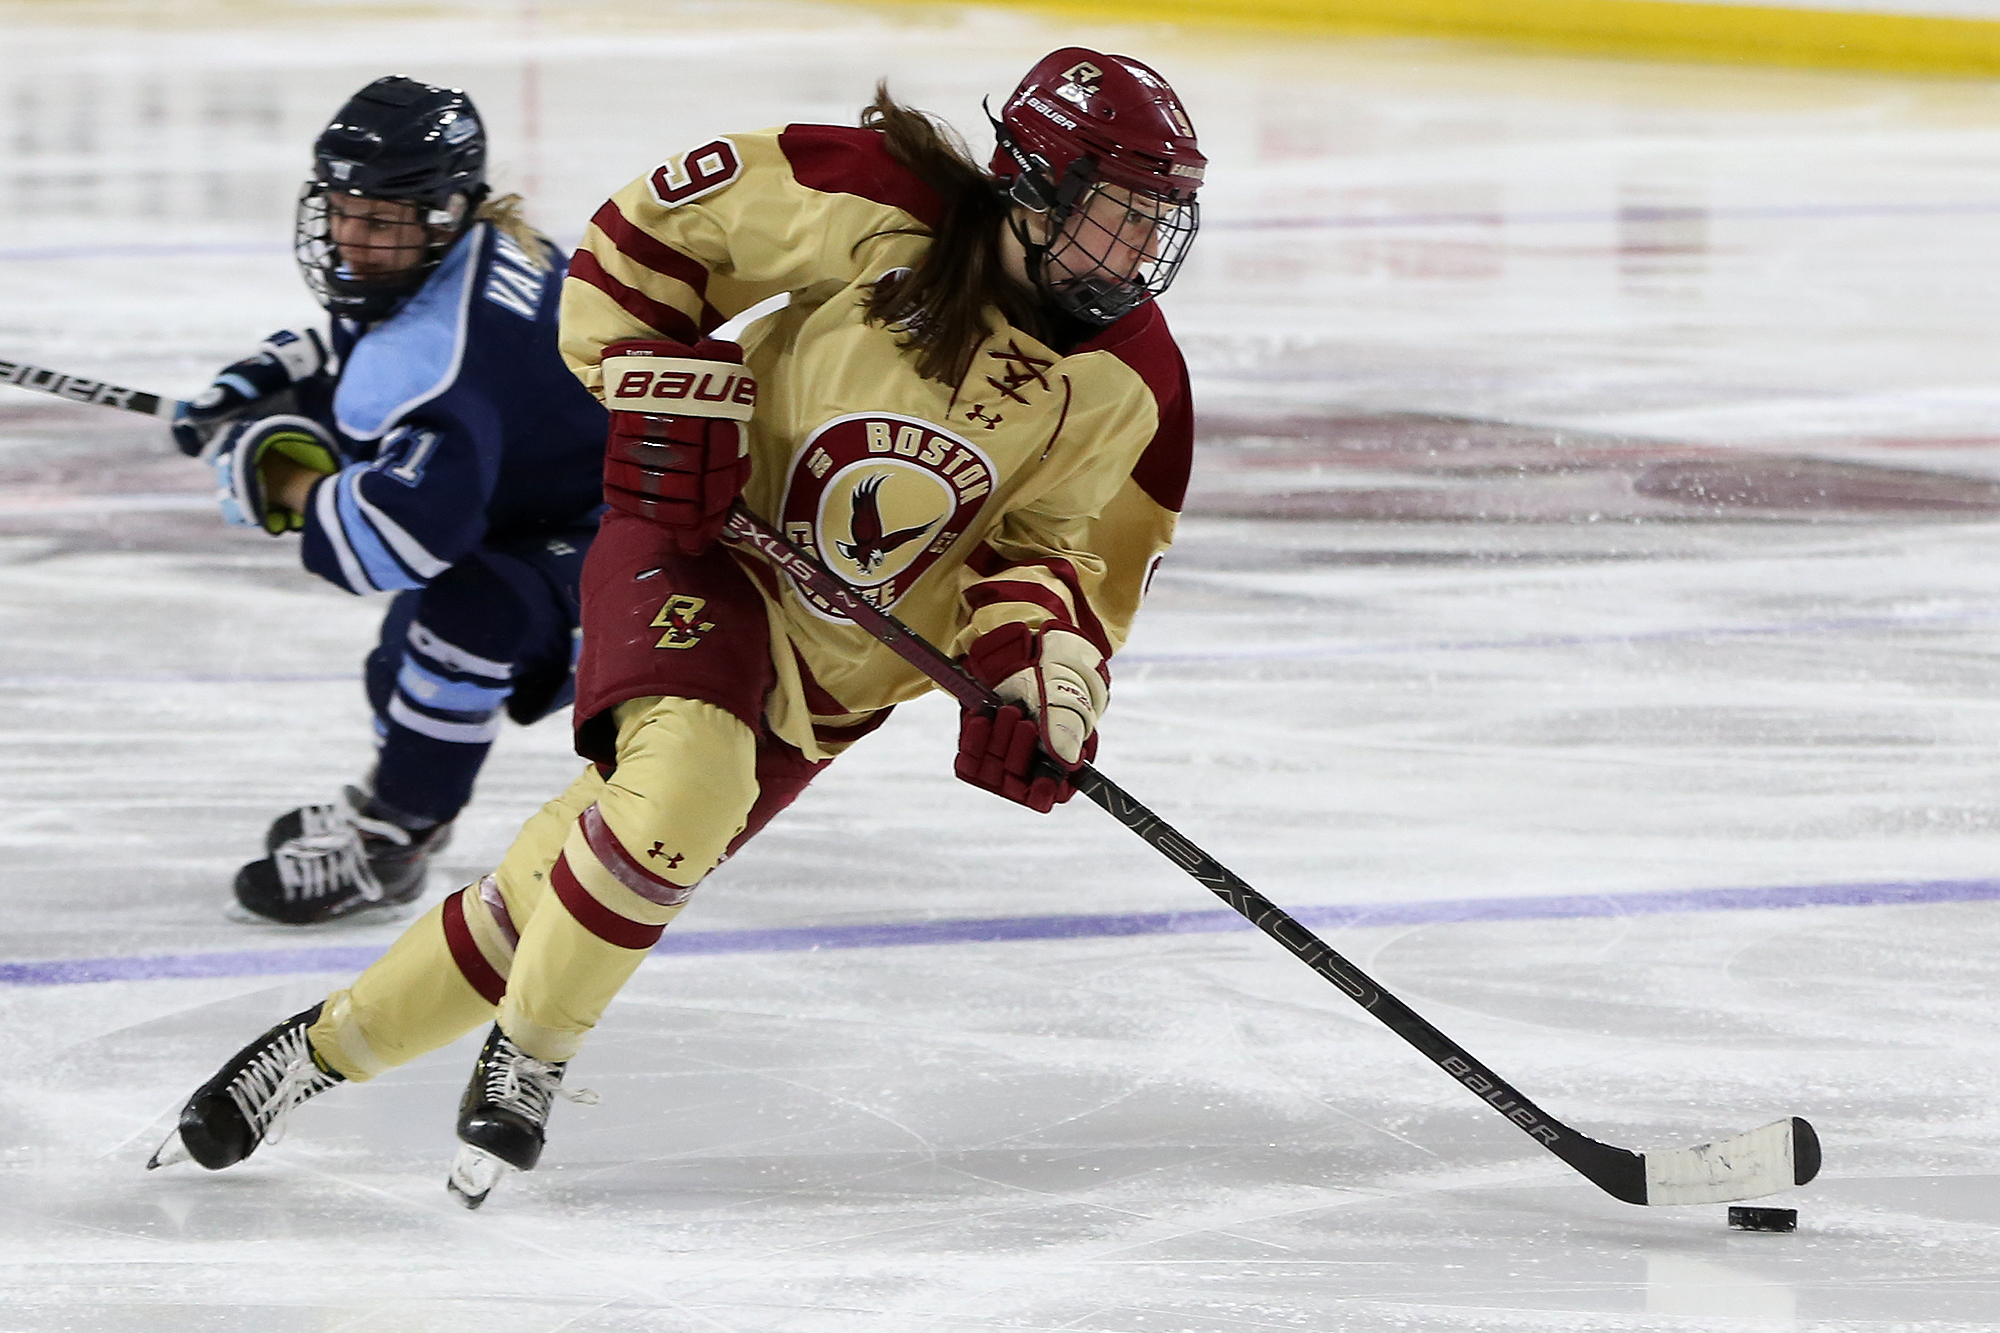 Boston College Women's Hockey - BC Interruption